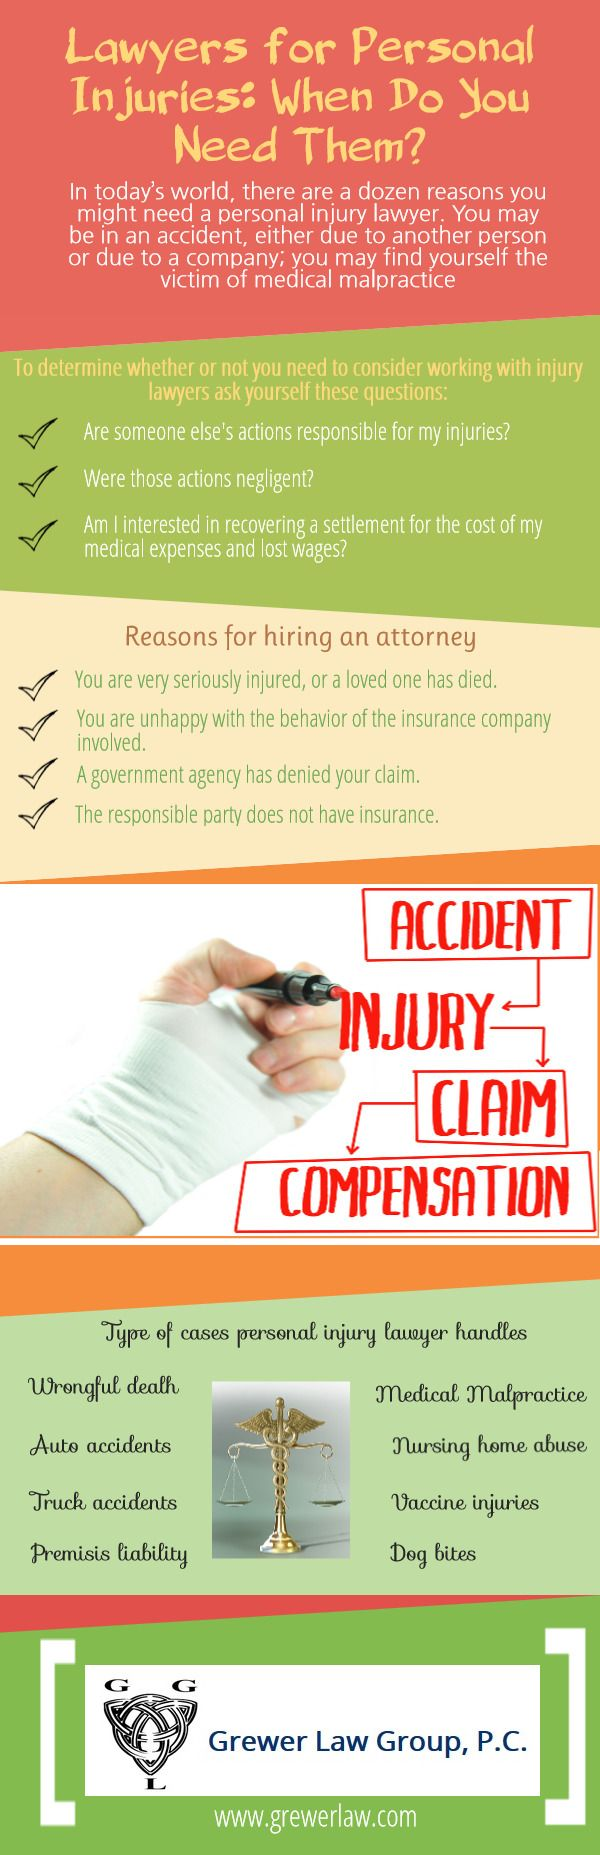 Lawyers for personal injuries - when do you need them?